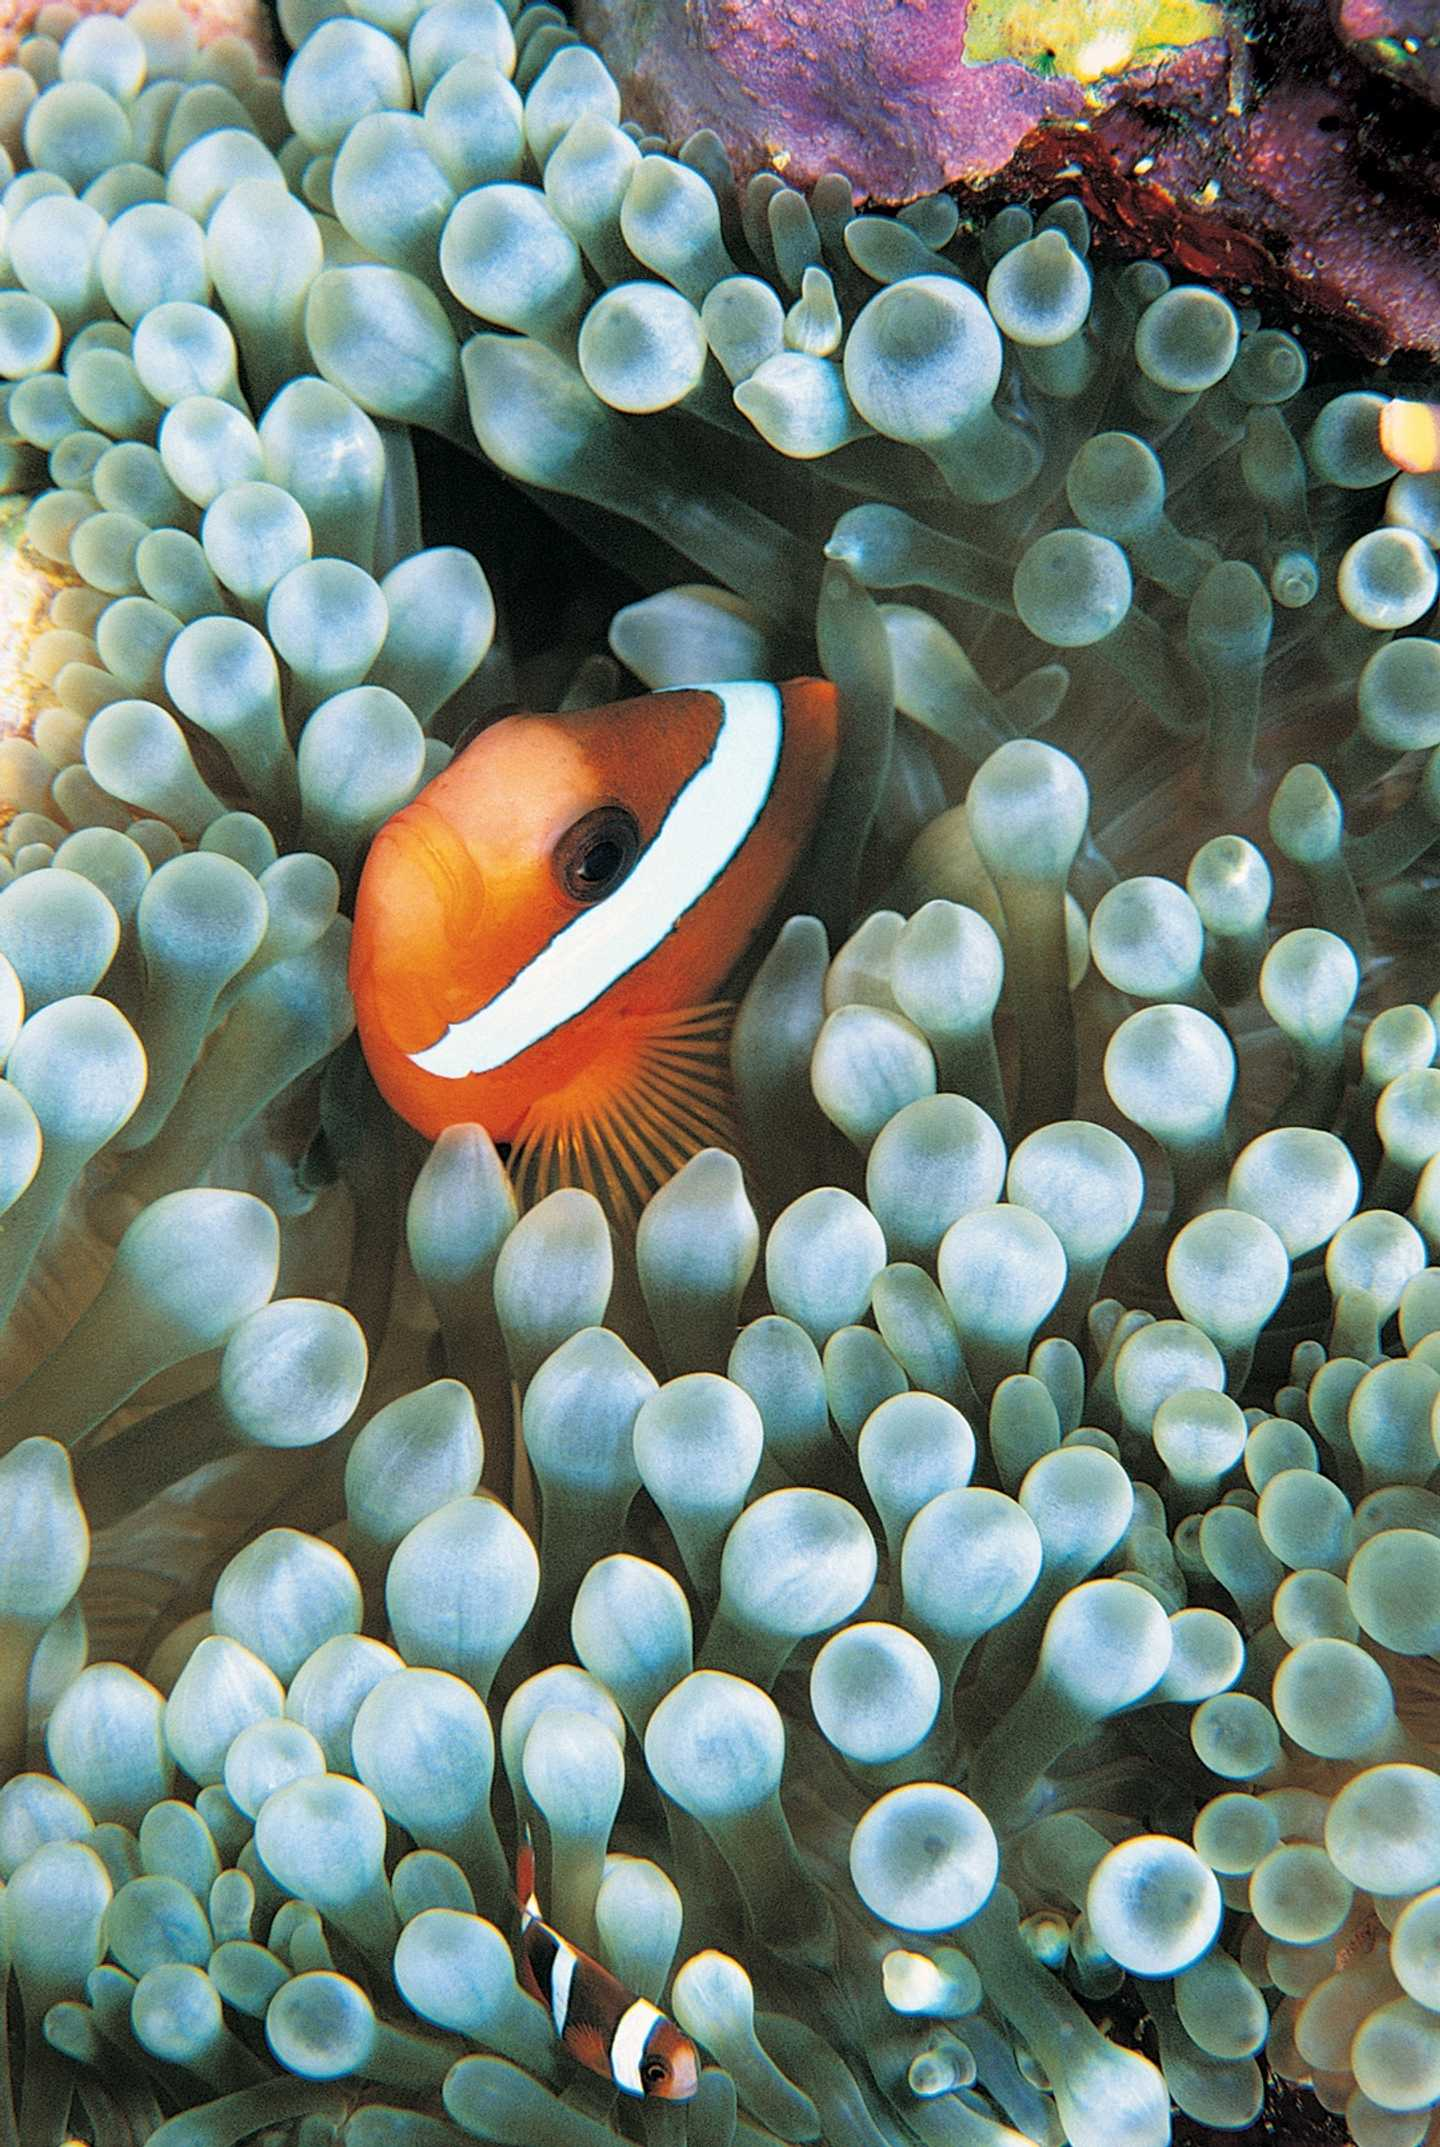 Clown fish hiding in reef